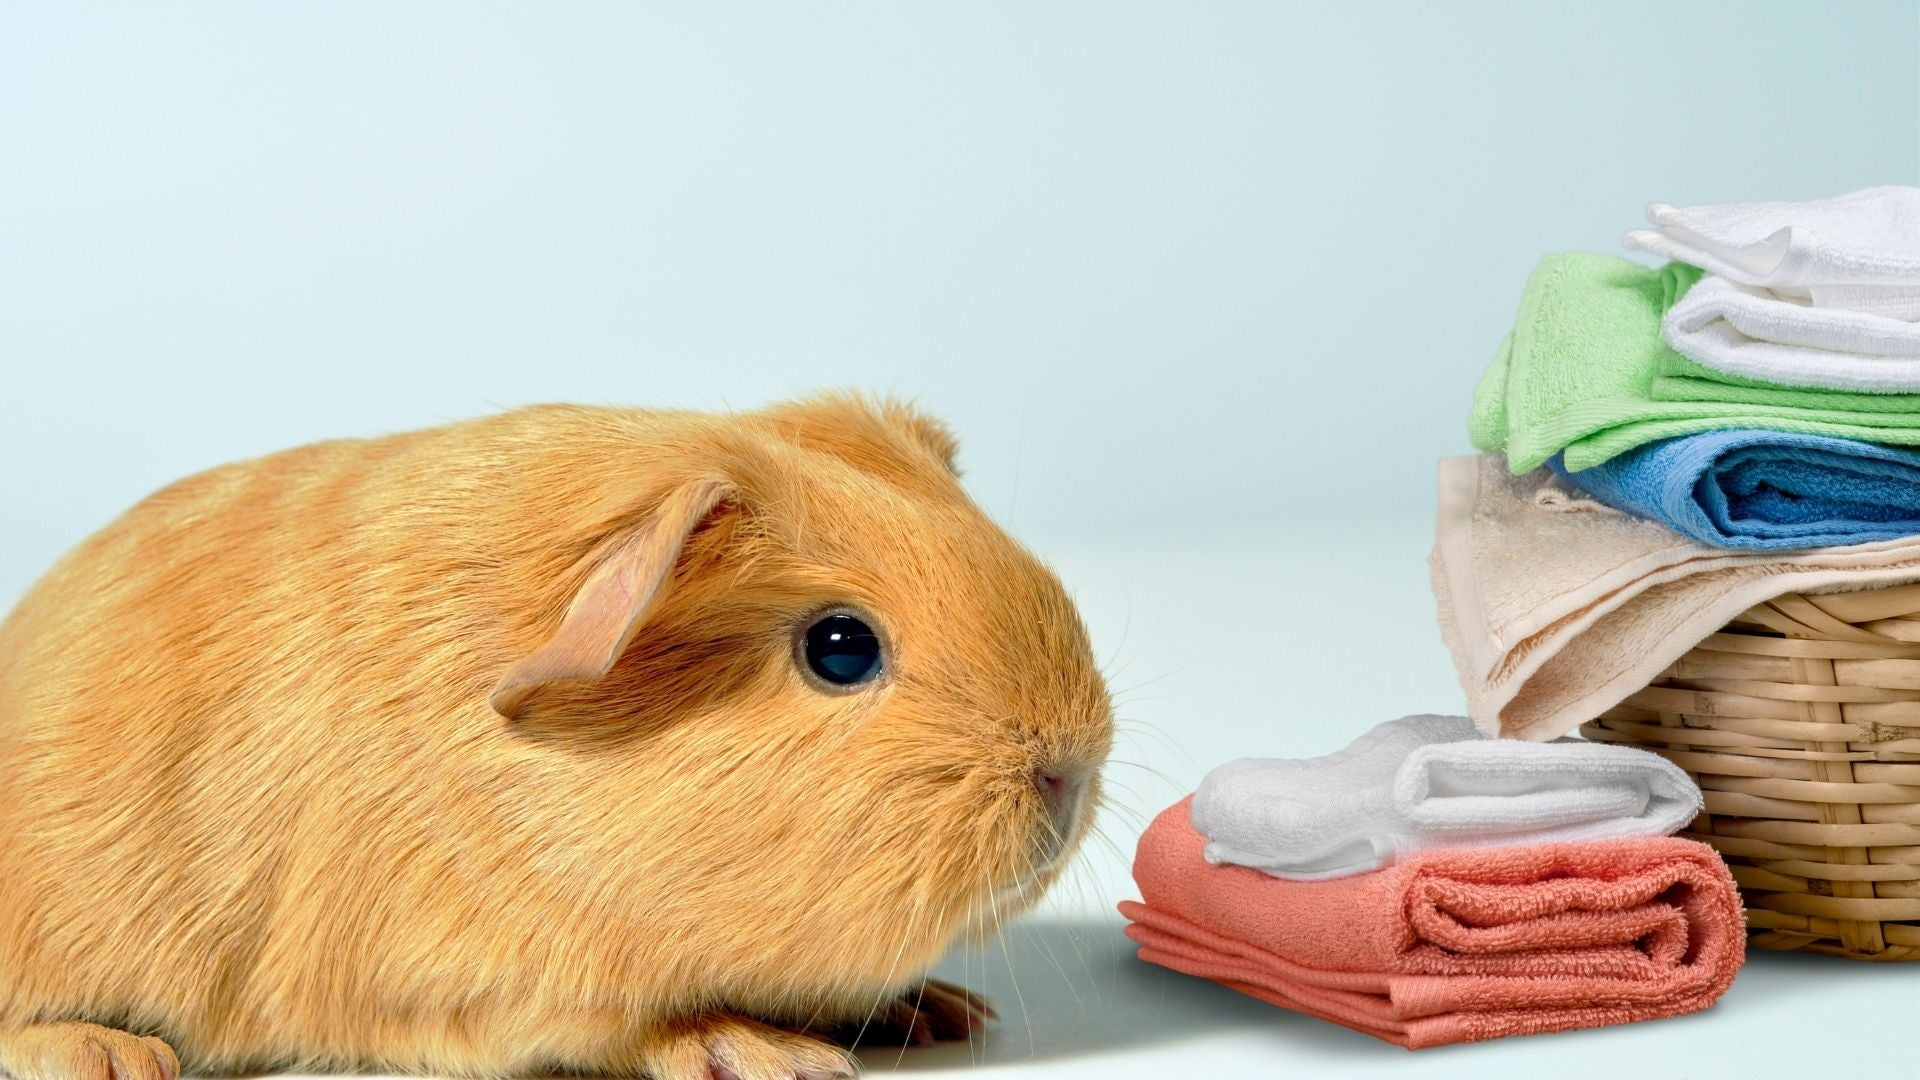 golden haired guinea pig sitting next to laundry basket on blue background